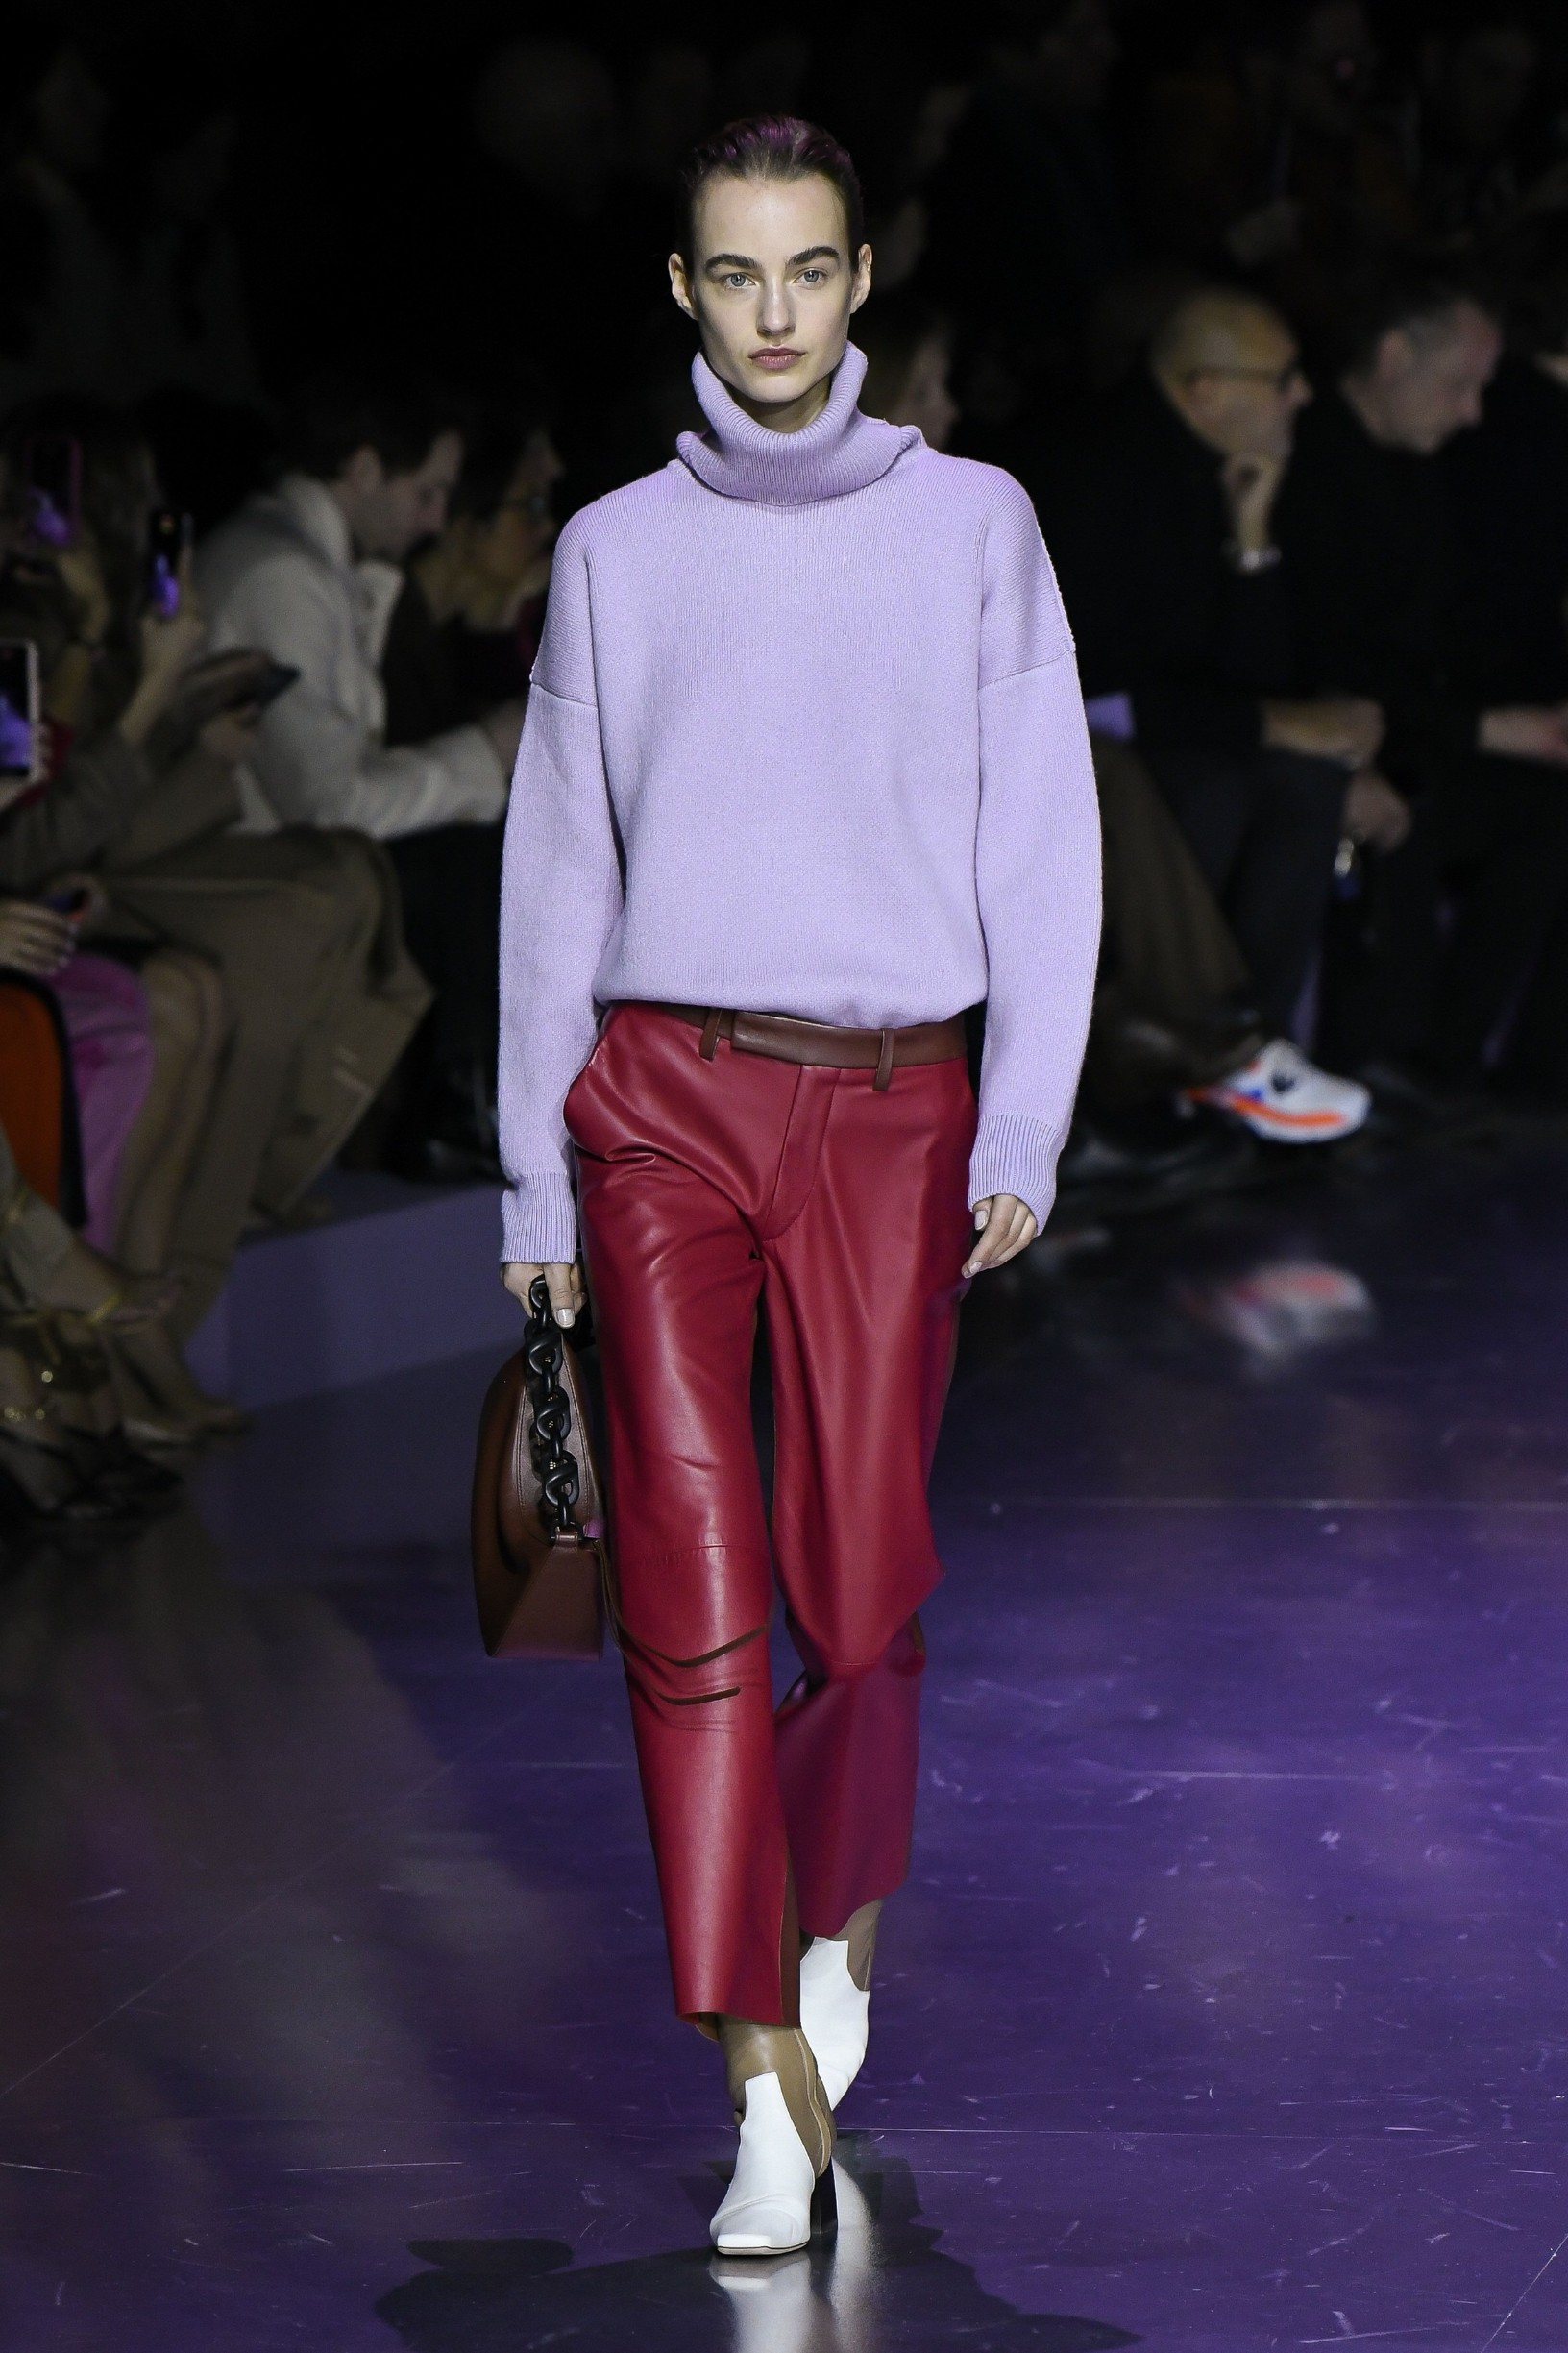 Model wears an outfit as part of the women ready-to-wear autumn winter 2020 2021, women fashion week, Milan, ITA, from the house of BOSS  //Z-PIXEL-FORMULA_C_022/2002232229/Credit:PIXELFORMULA/SIPA/2002232236, Image: 500550234, License: Rights-managed, Restrictions: , Model Release: no, Credit line: PIXELFORMULA / Sipa Press / Profimedia